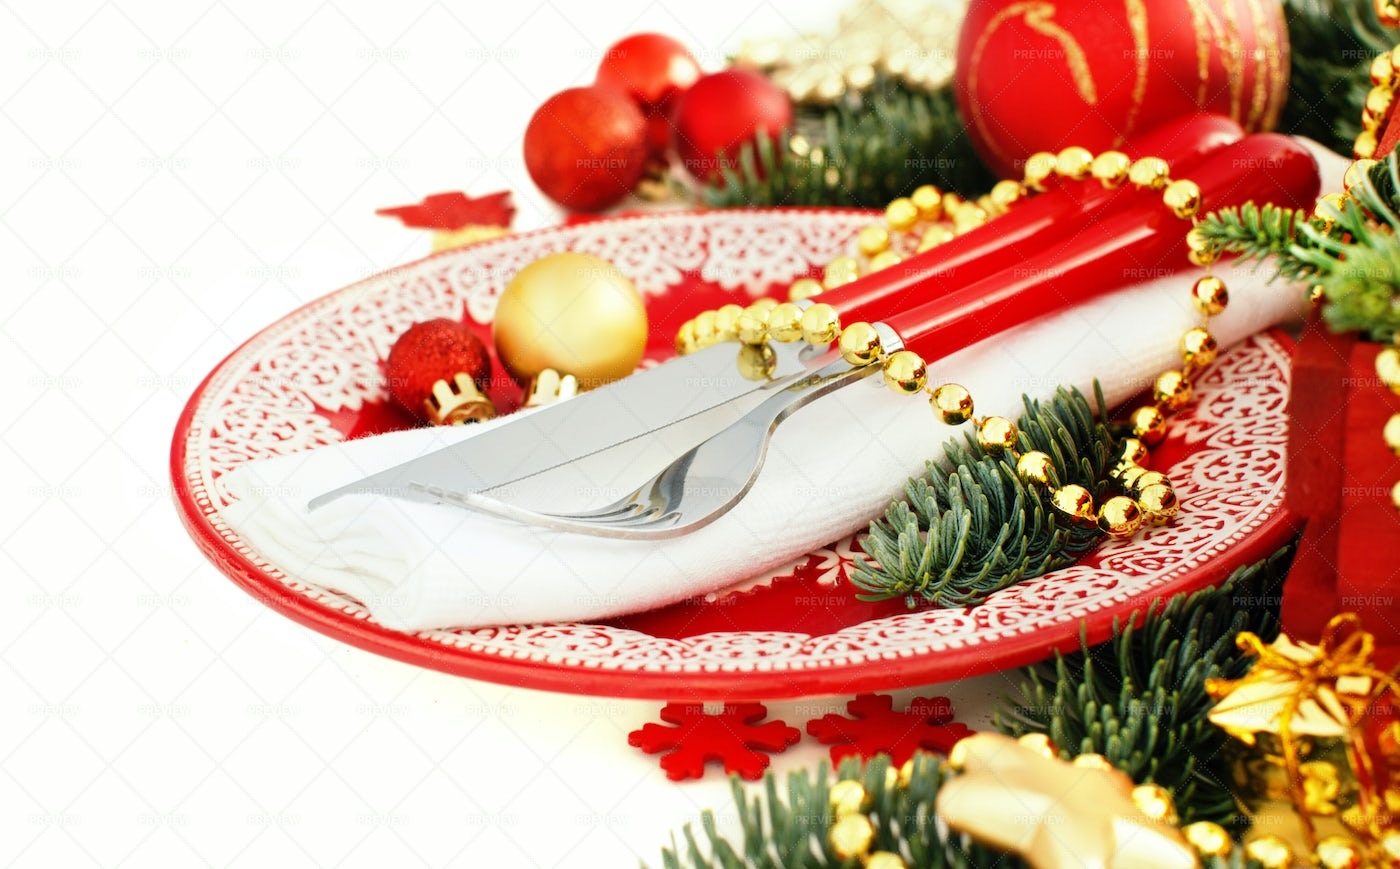 Red And Golden Table Setting: Stock Photos